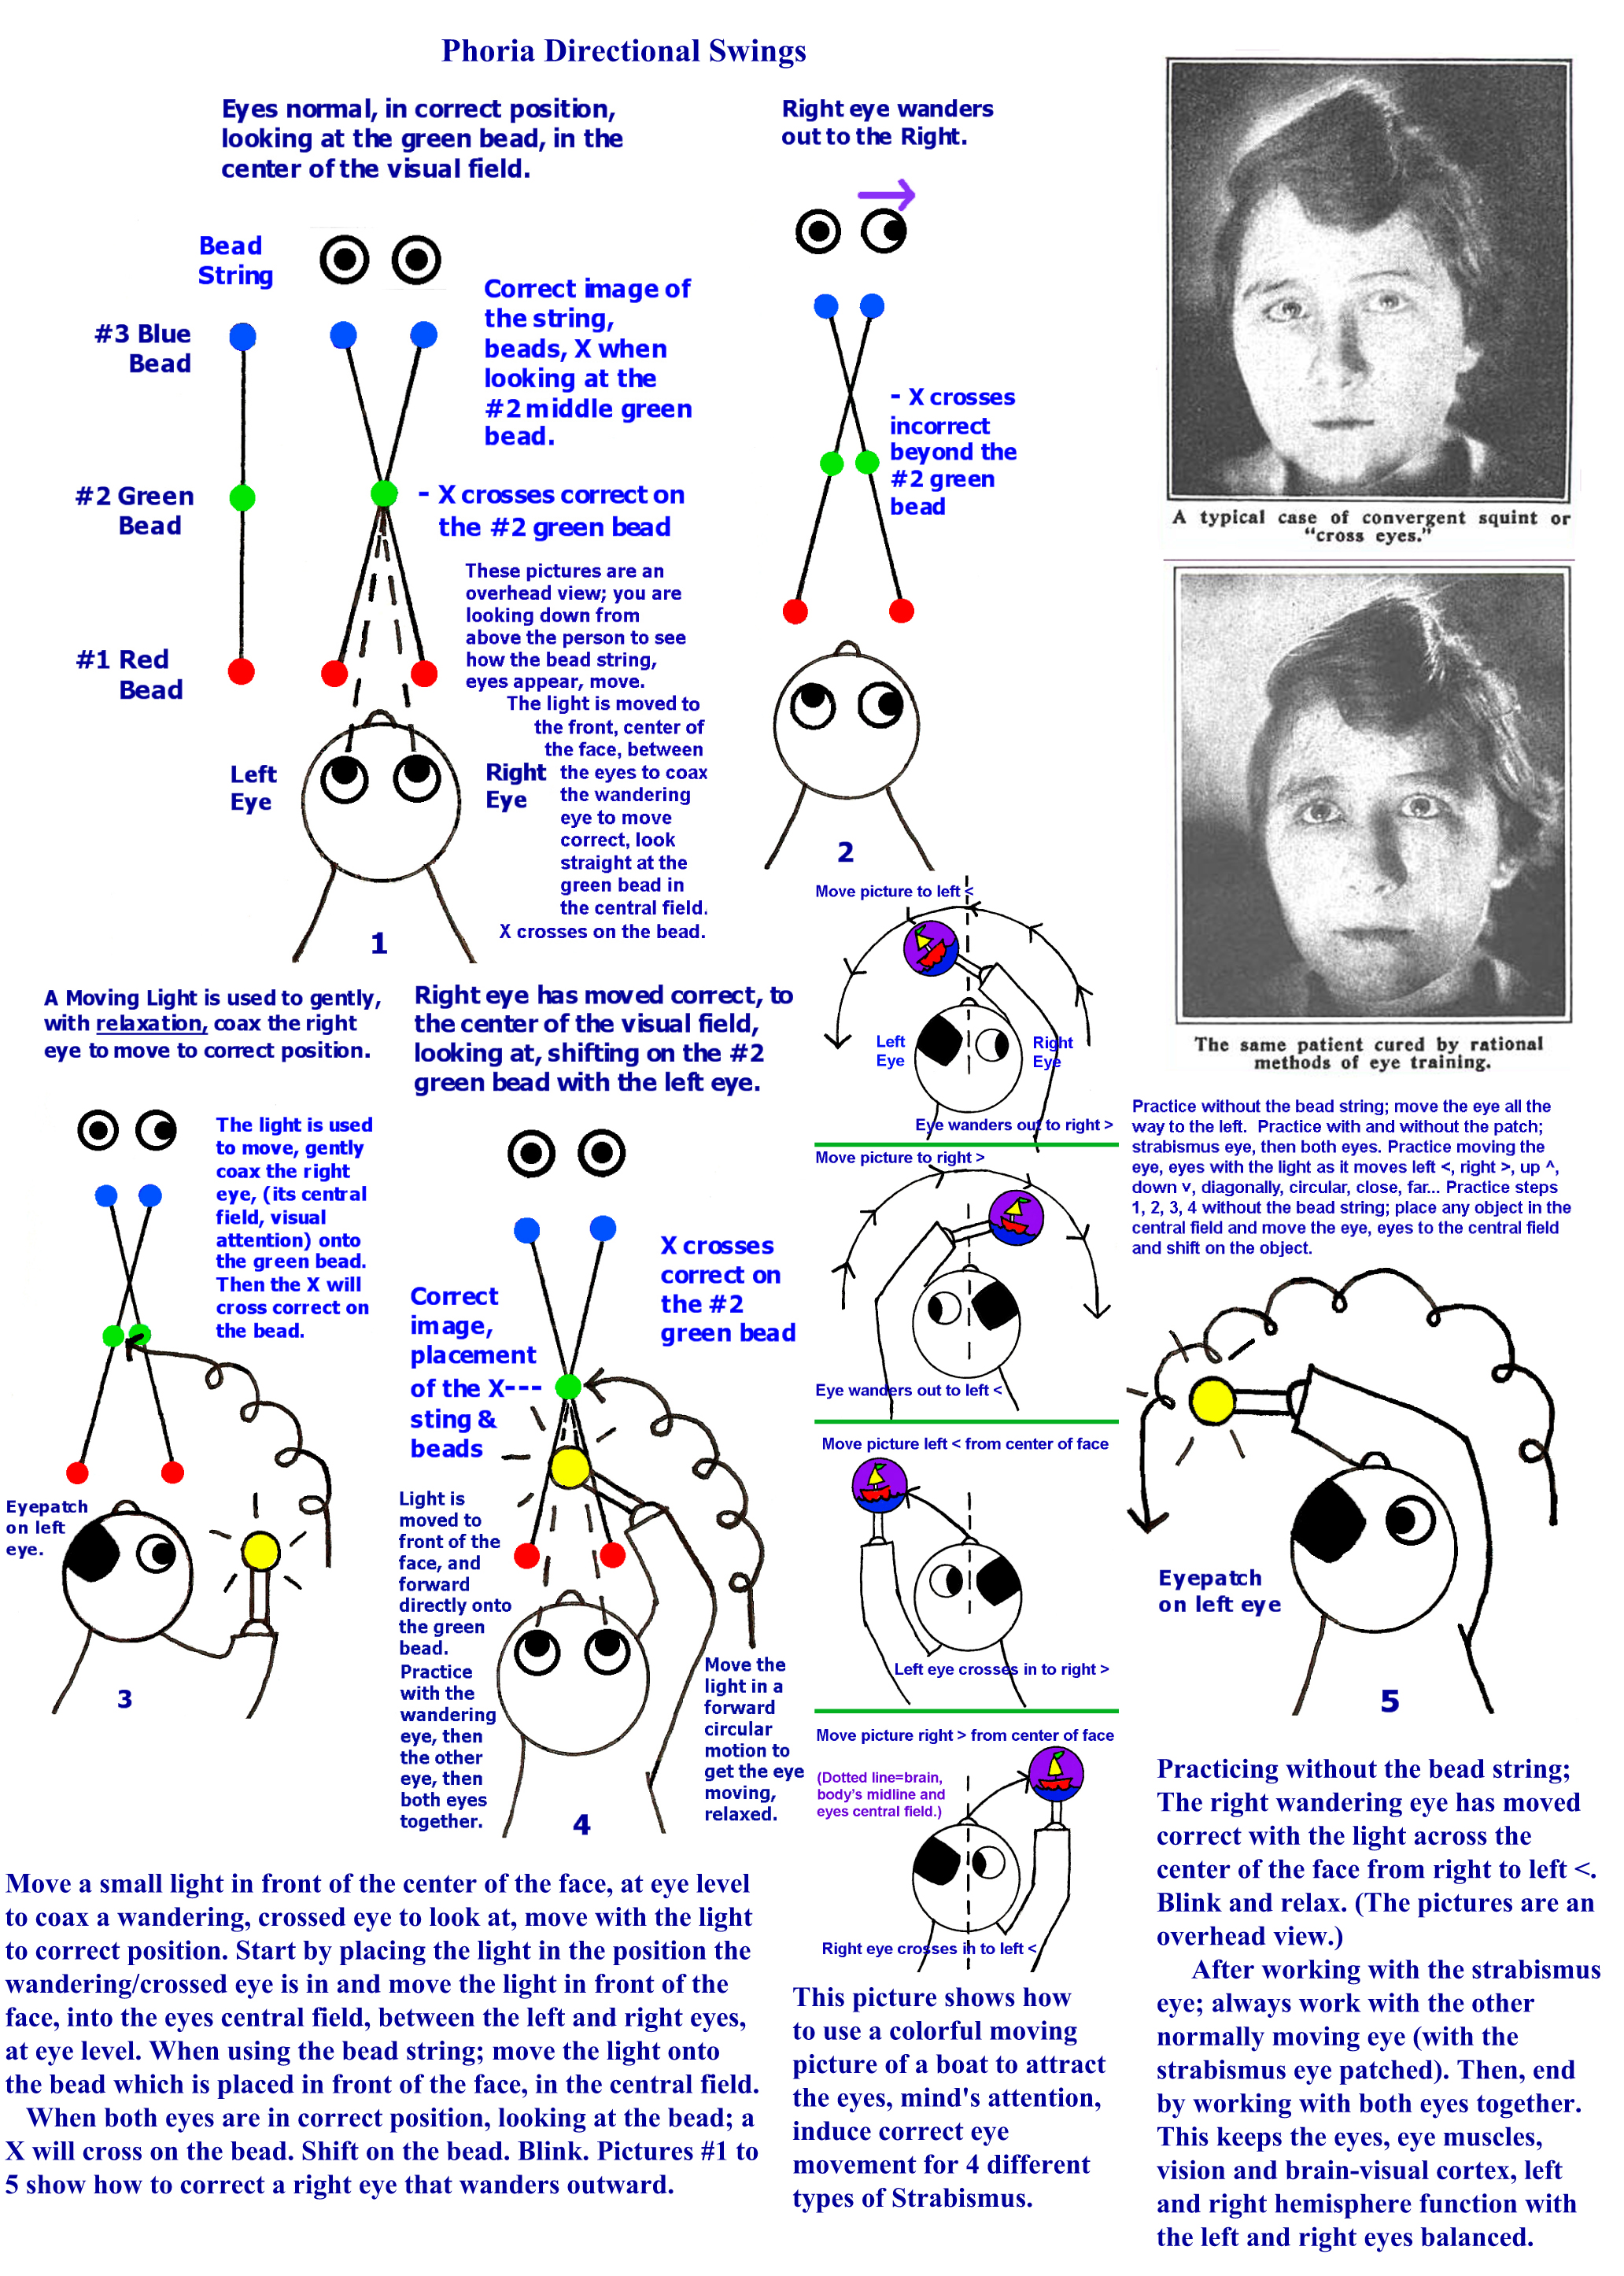 Phoria Swing For Correct Eye Movement